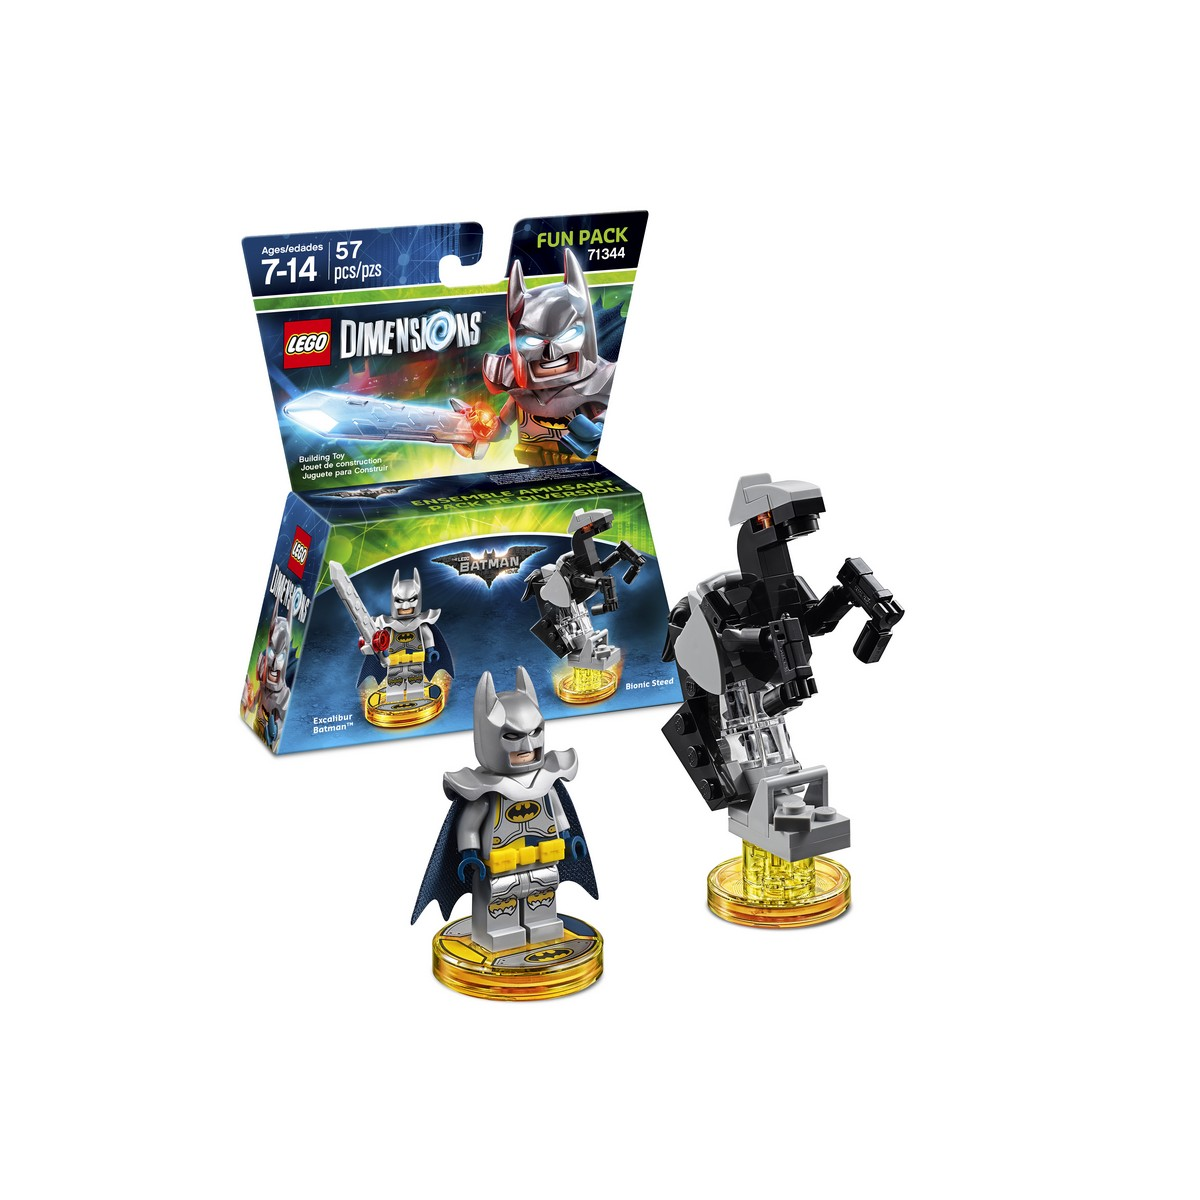 The lego batman movie et excalibur batman rejoignent lego dimensions - Jeux lego batman gratuit ...